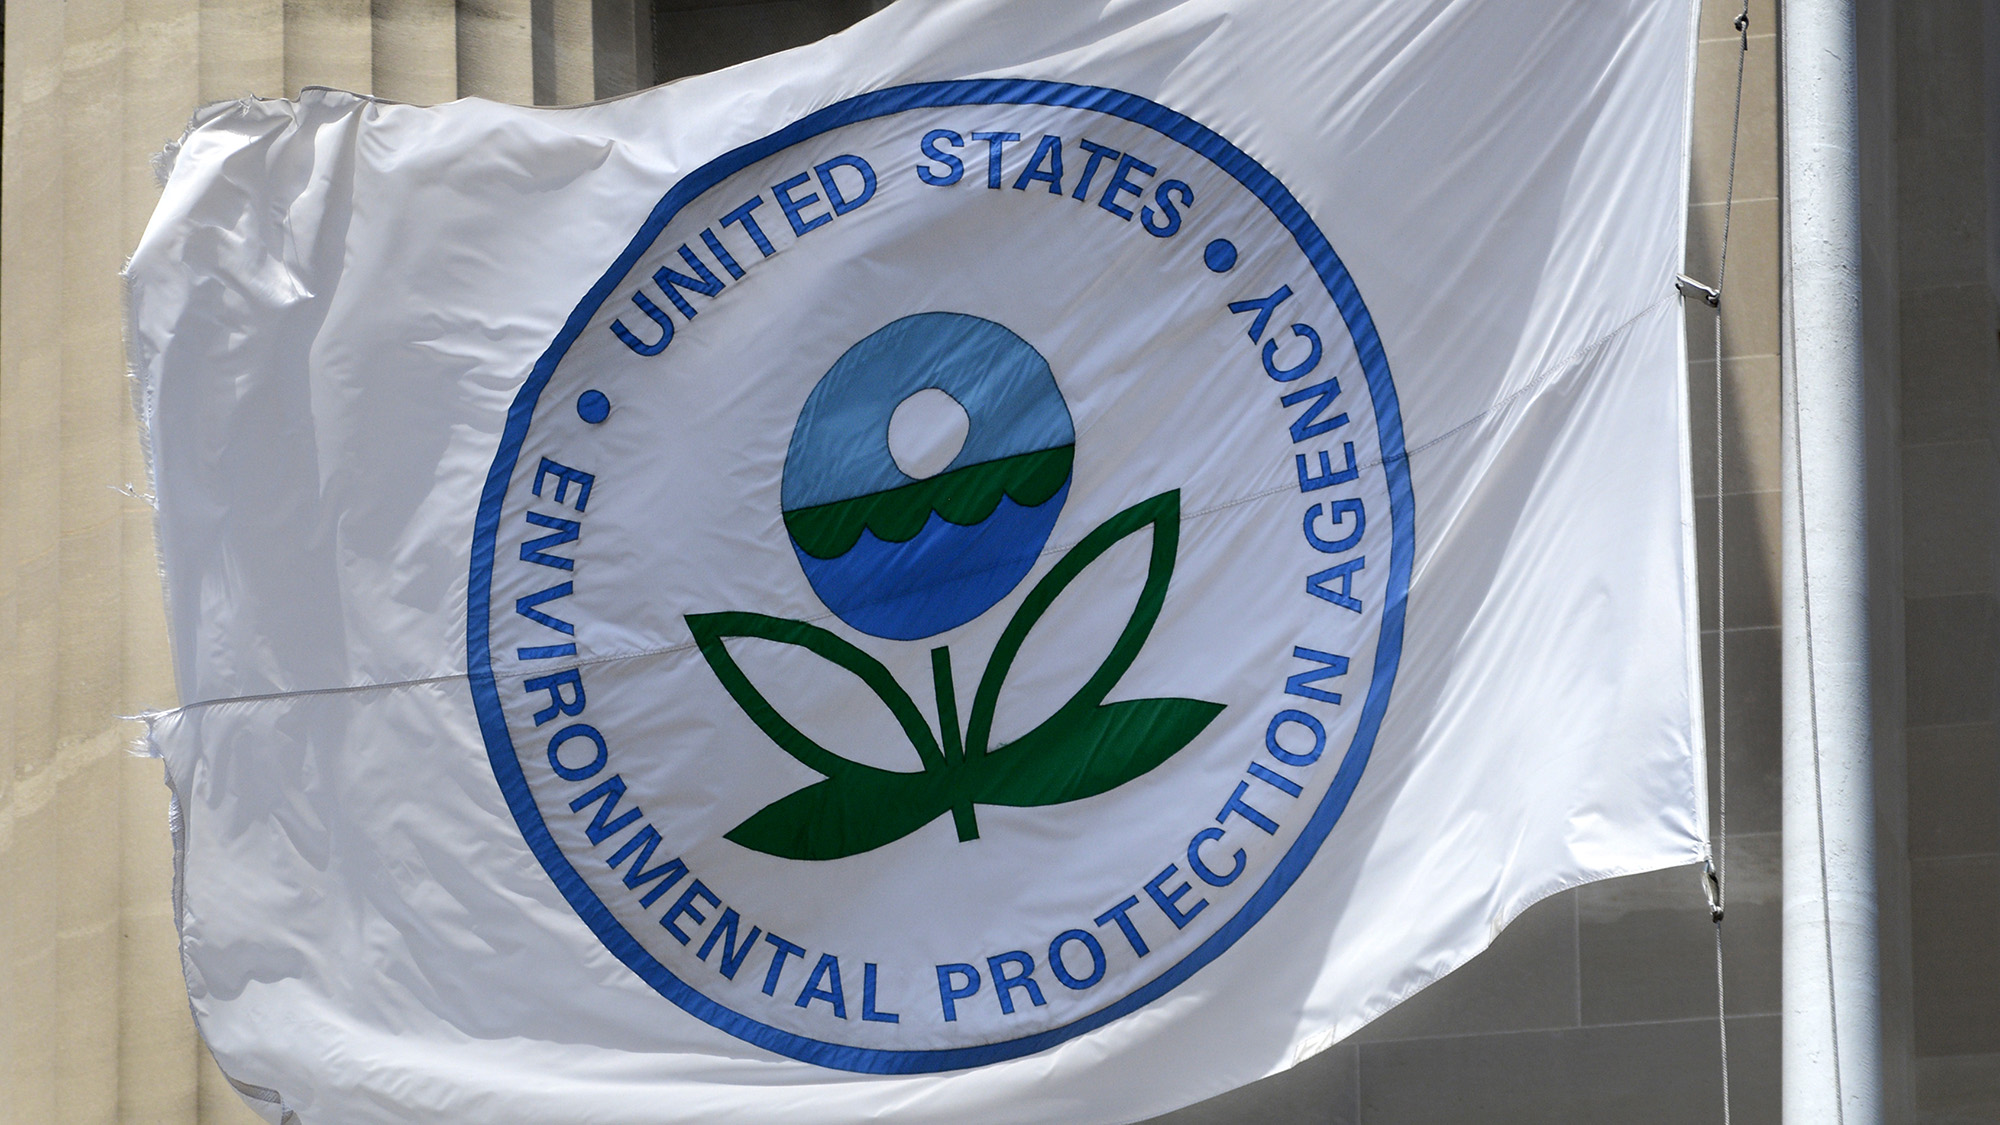 Glendale Metals Company Fined Nearly $50,000 by EPA For Hazardous Waste Violations